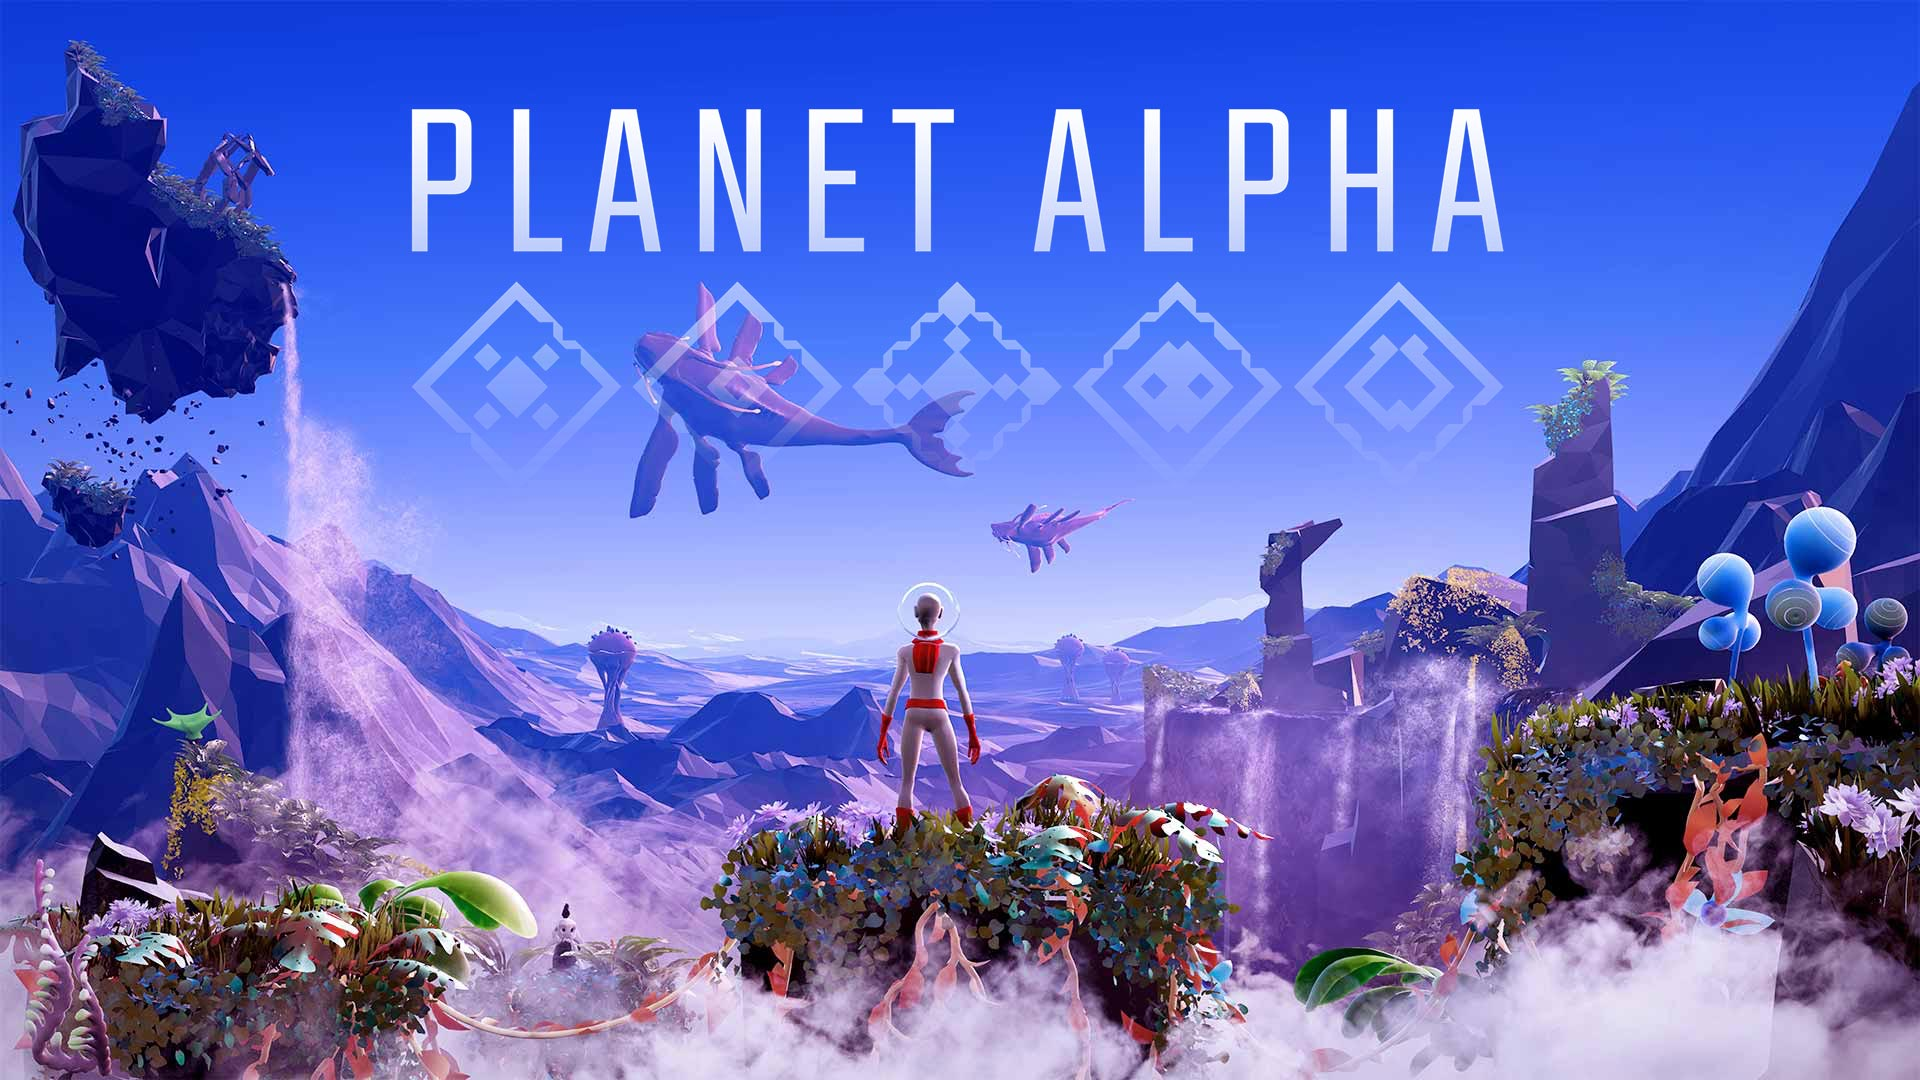 Introducing PLANET ALPHA